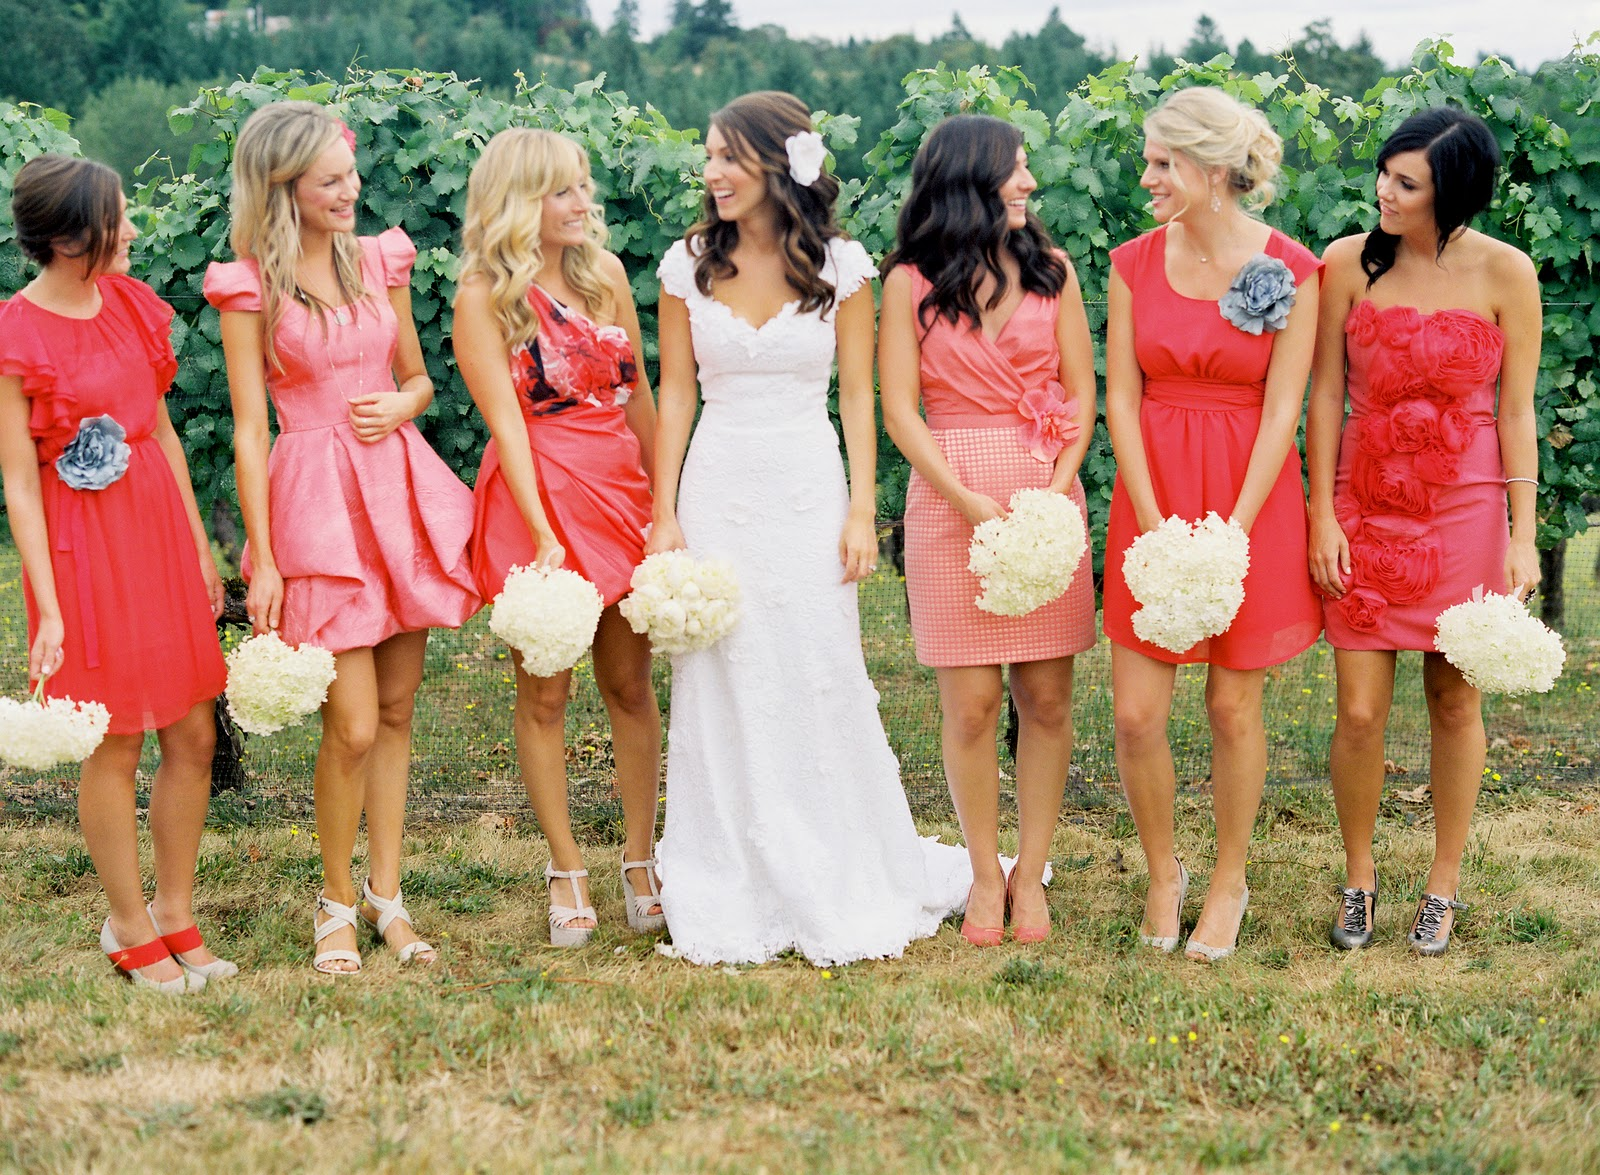 Coolingerie how to make a perfect work of mismatched bridesmaid how to make a perfect work of mismatched bridesmaid dresses ombrellifo Choice Image